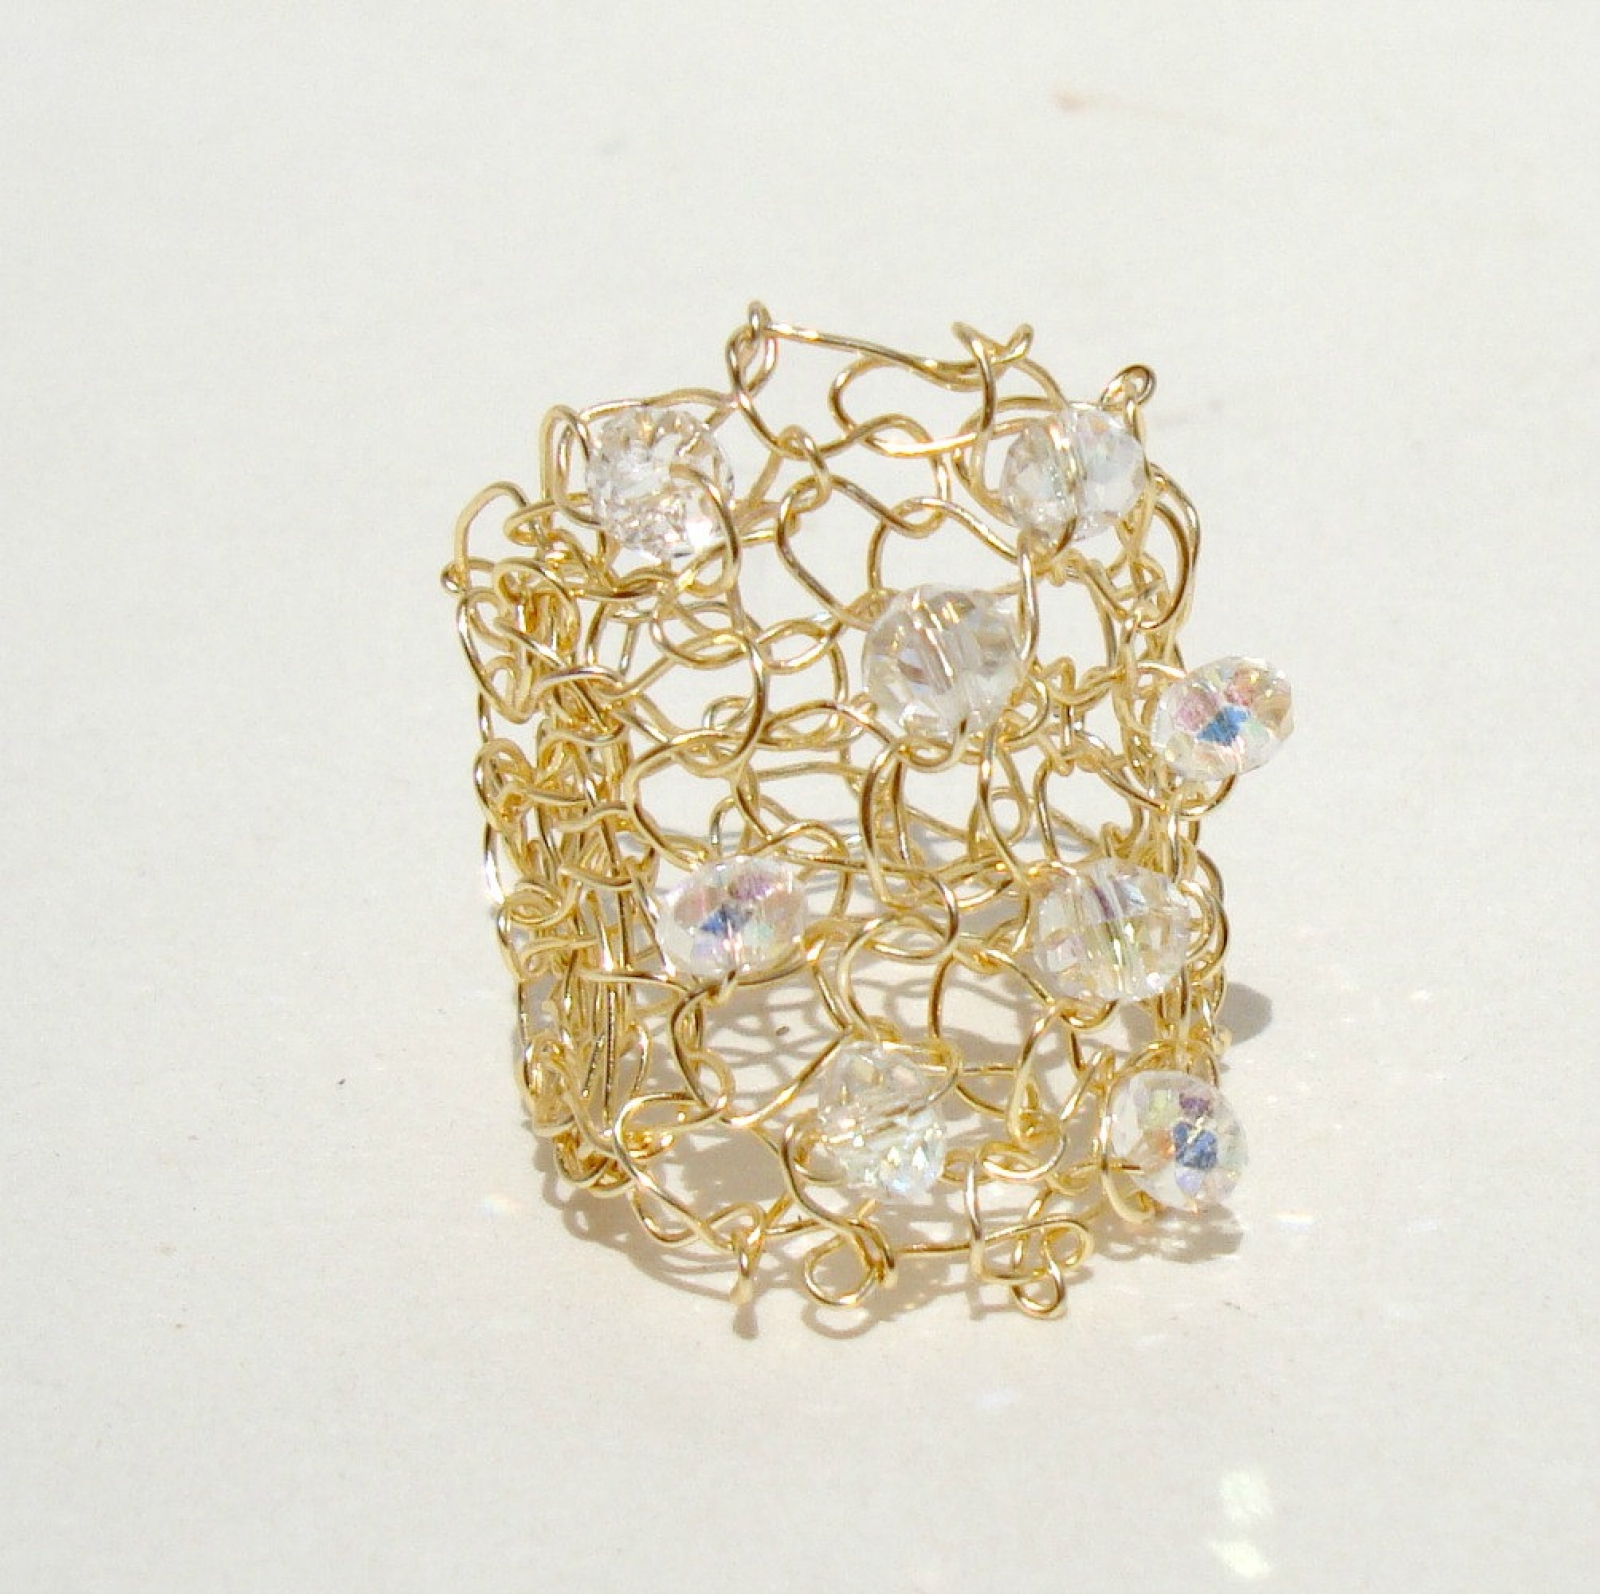 Big Gold Ring Crystal Bling Wire Knit Jewelry Sparkling Crystals